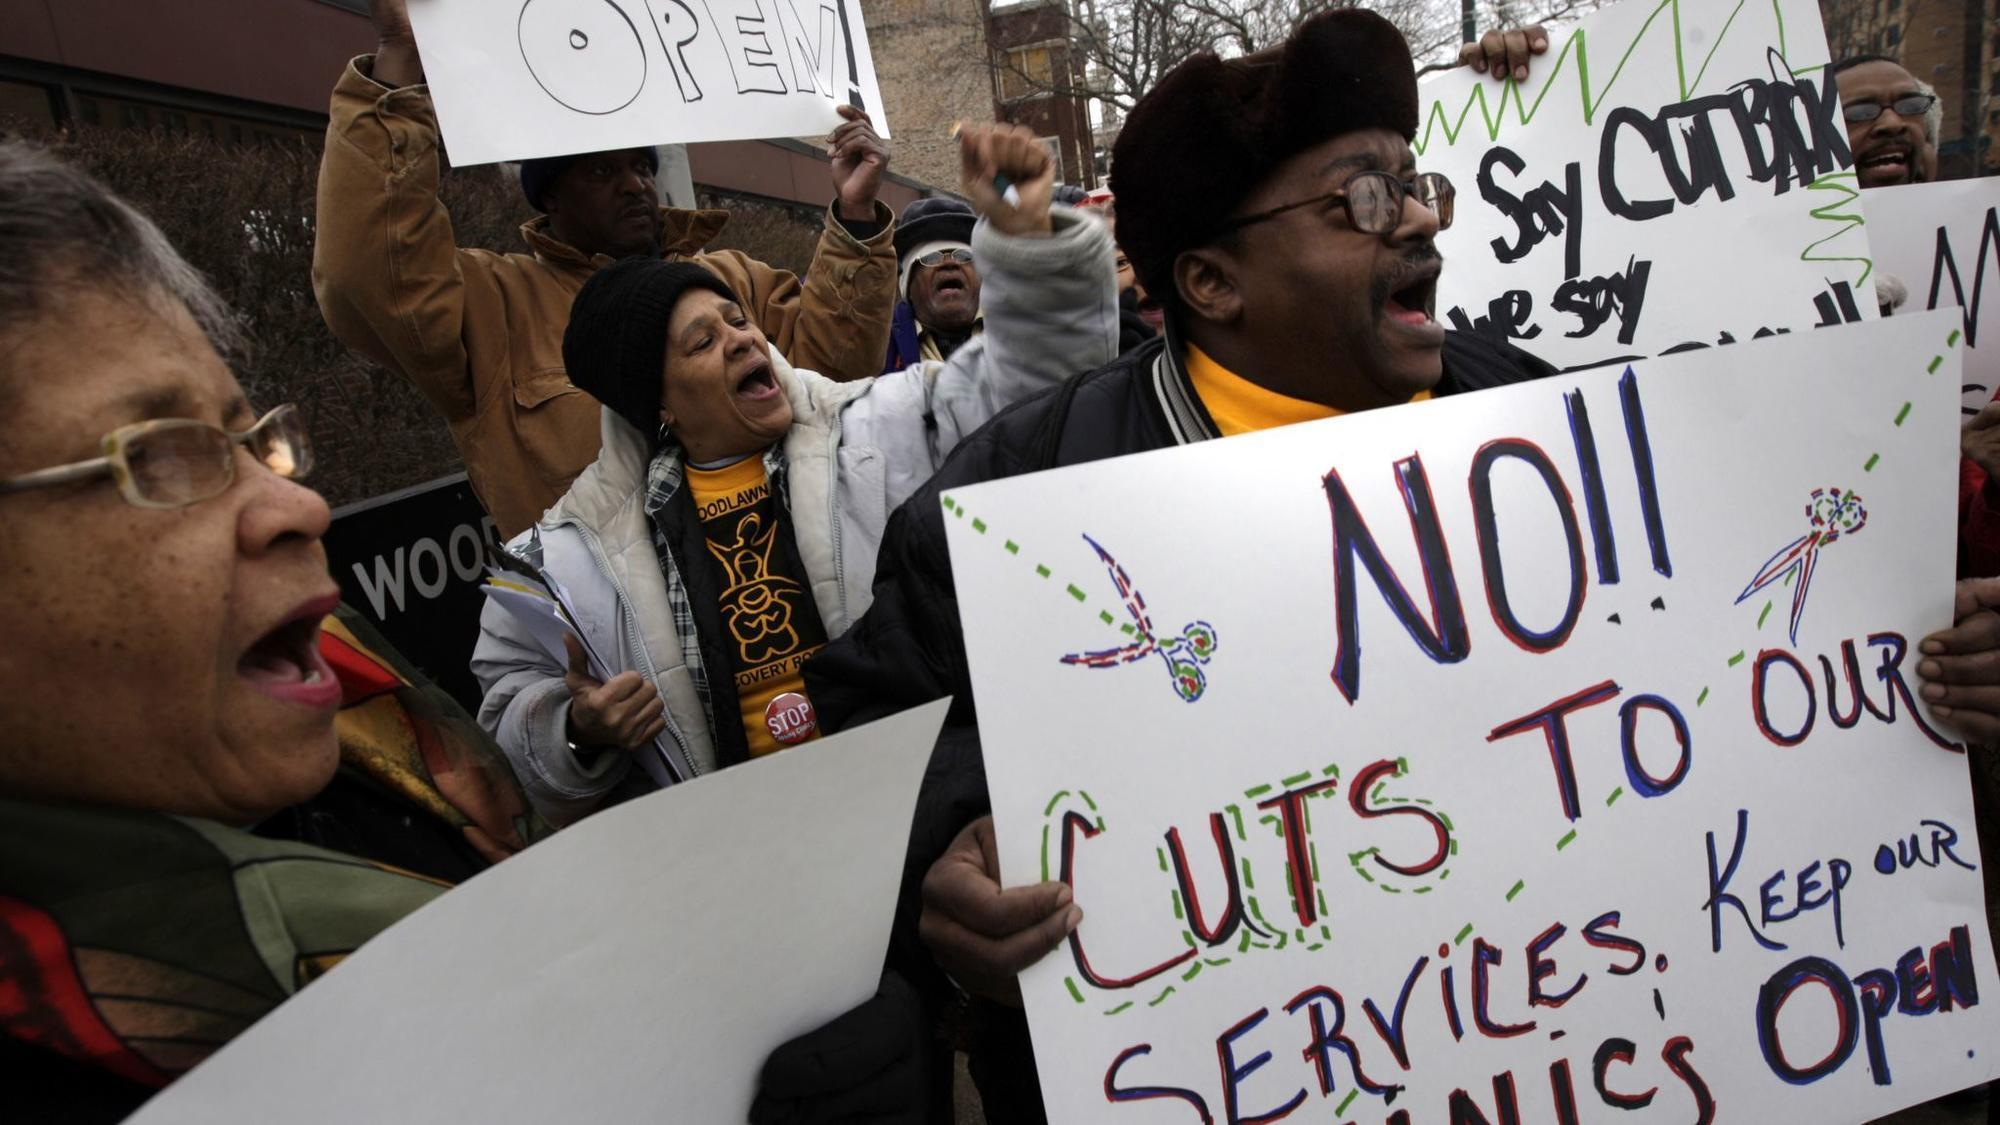 Chicago has a mental health crisis. Reopening 6 clinics ...